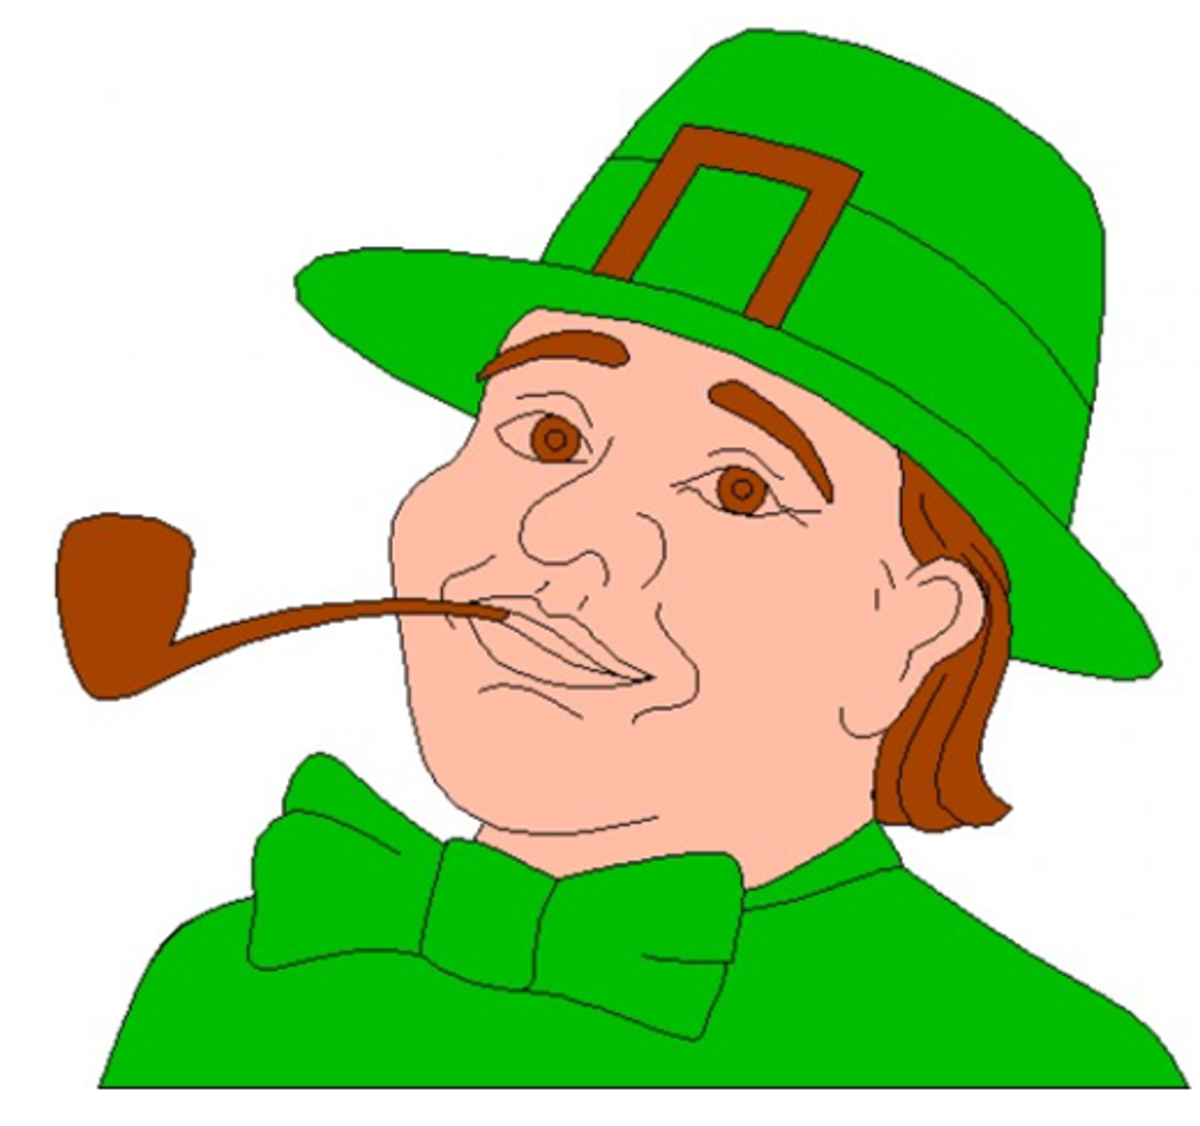 Leprechaun with Brown Hair Smoking a Pipe